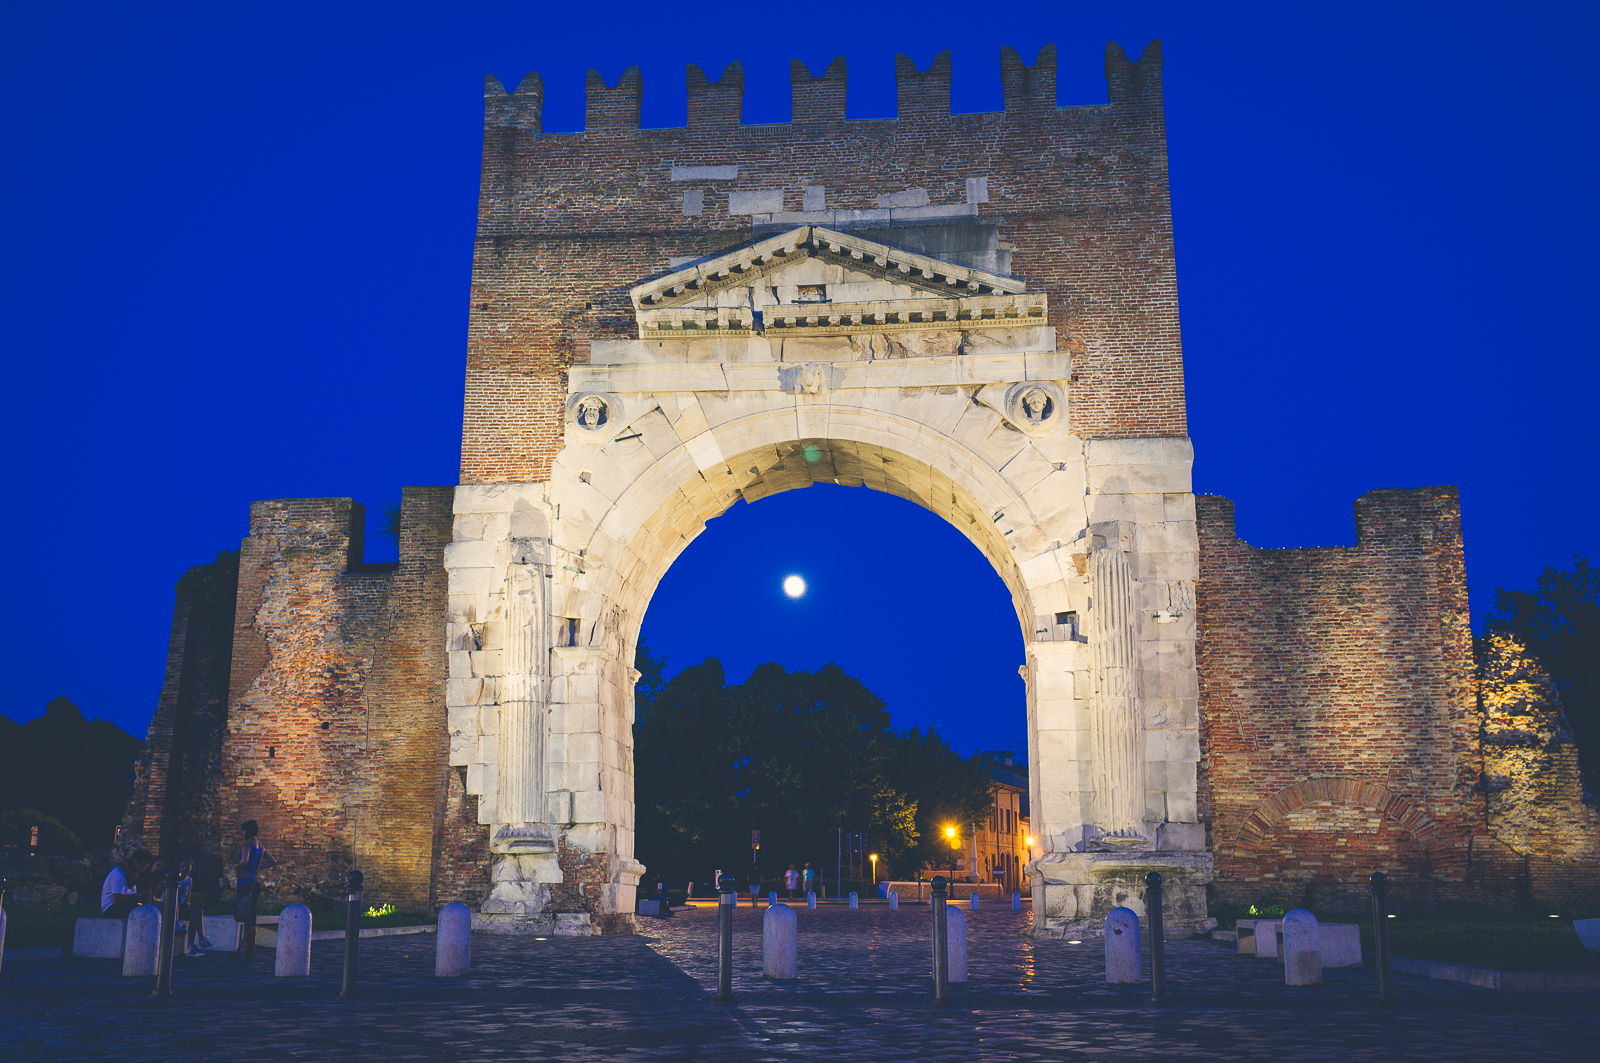 Arco di Augusto (The Augustus Arch)